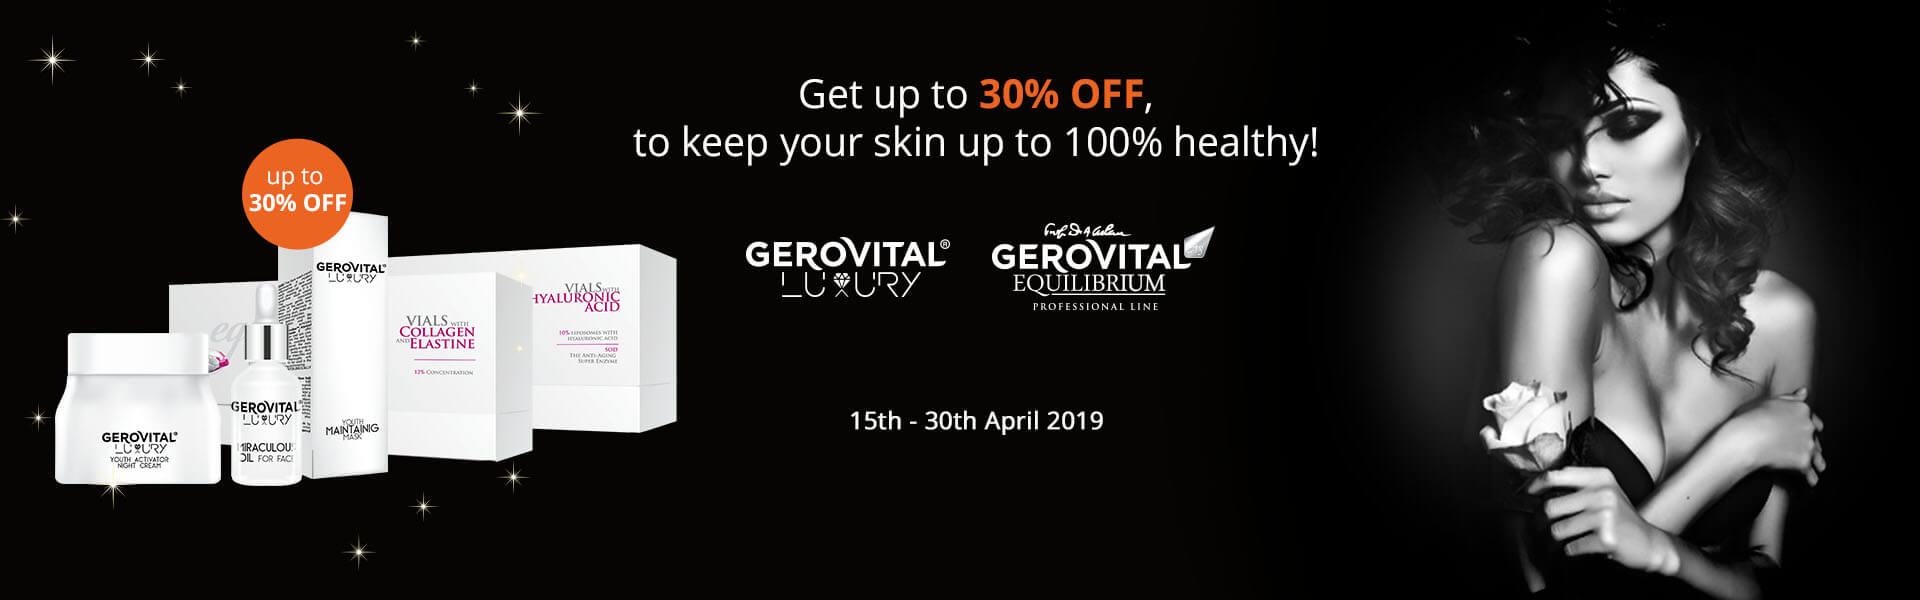 Get up to 30% OFF, to keep your skin up to 100% healthy!